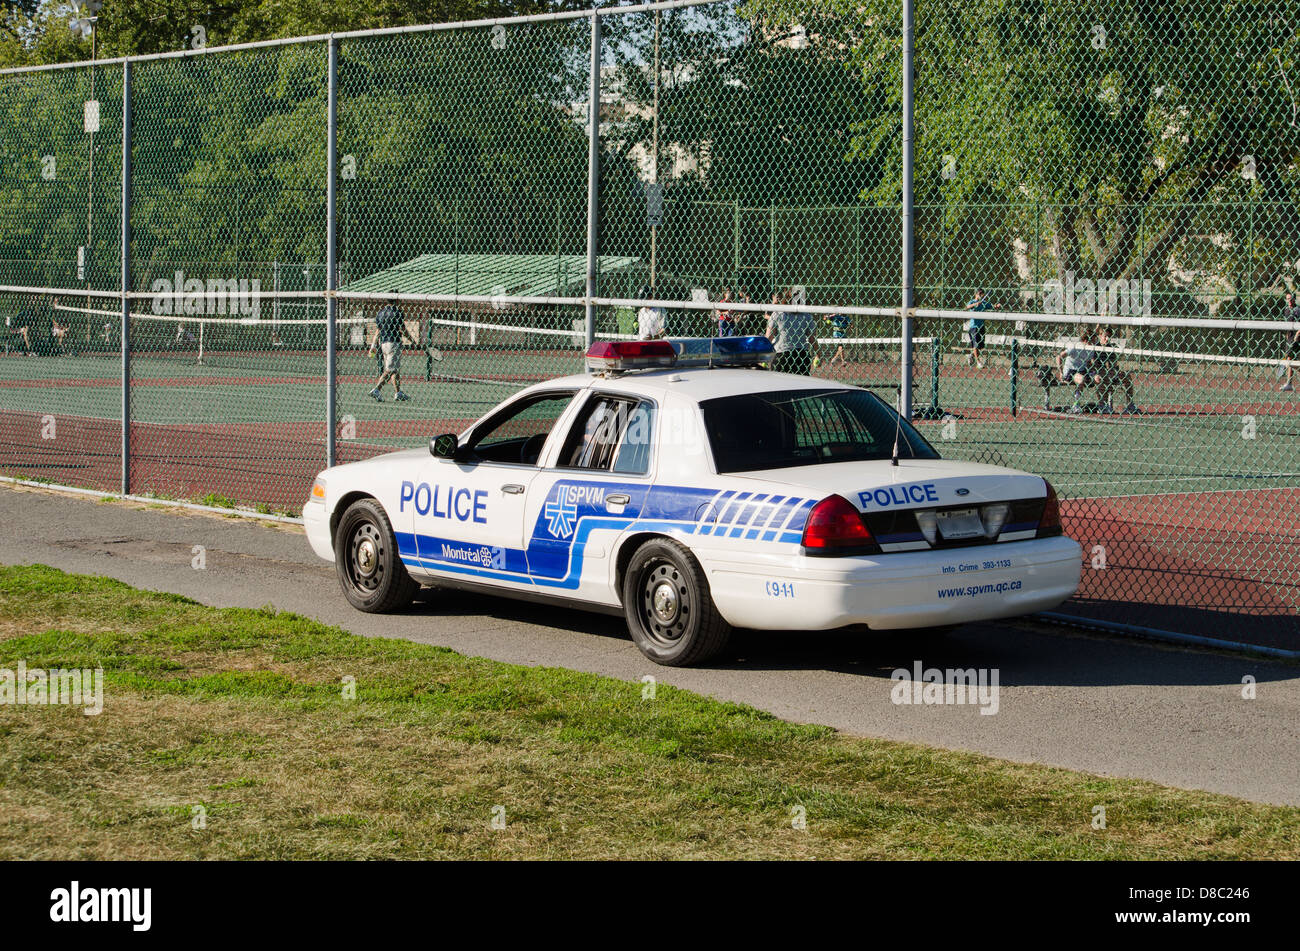 Police Car in Montreal Stock Photo